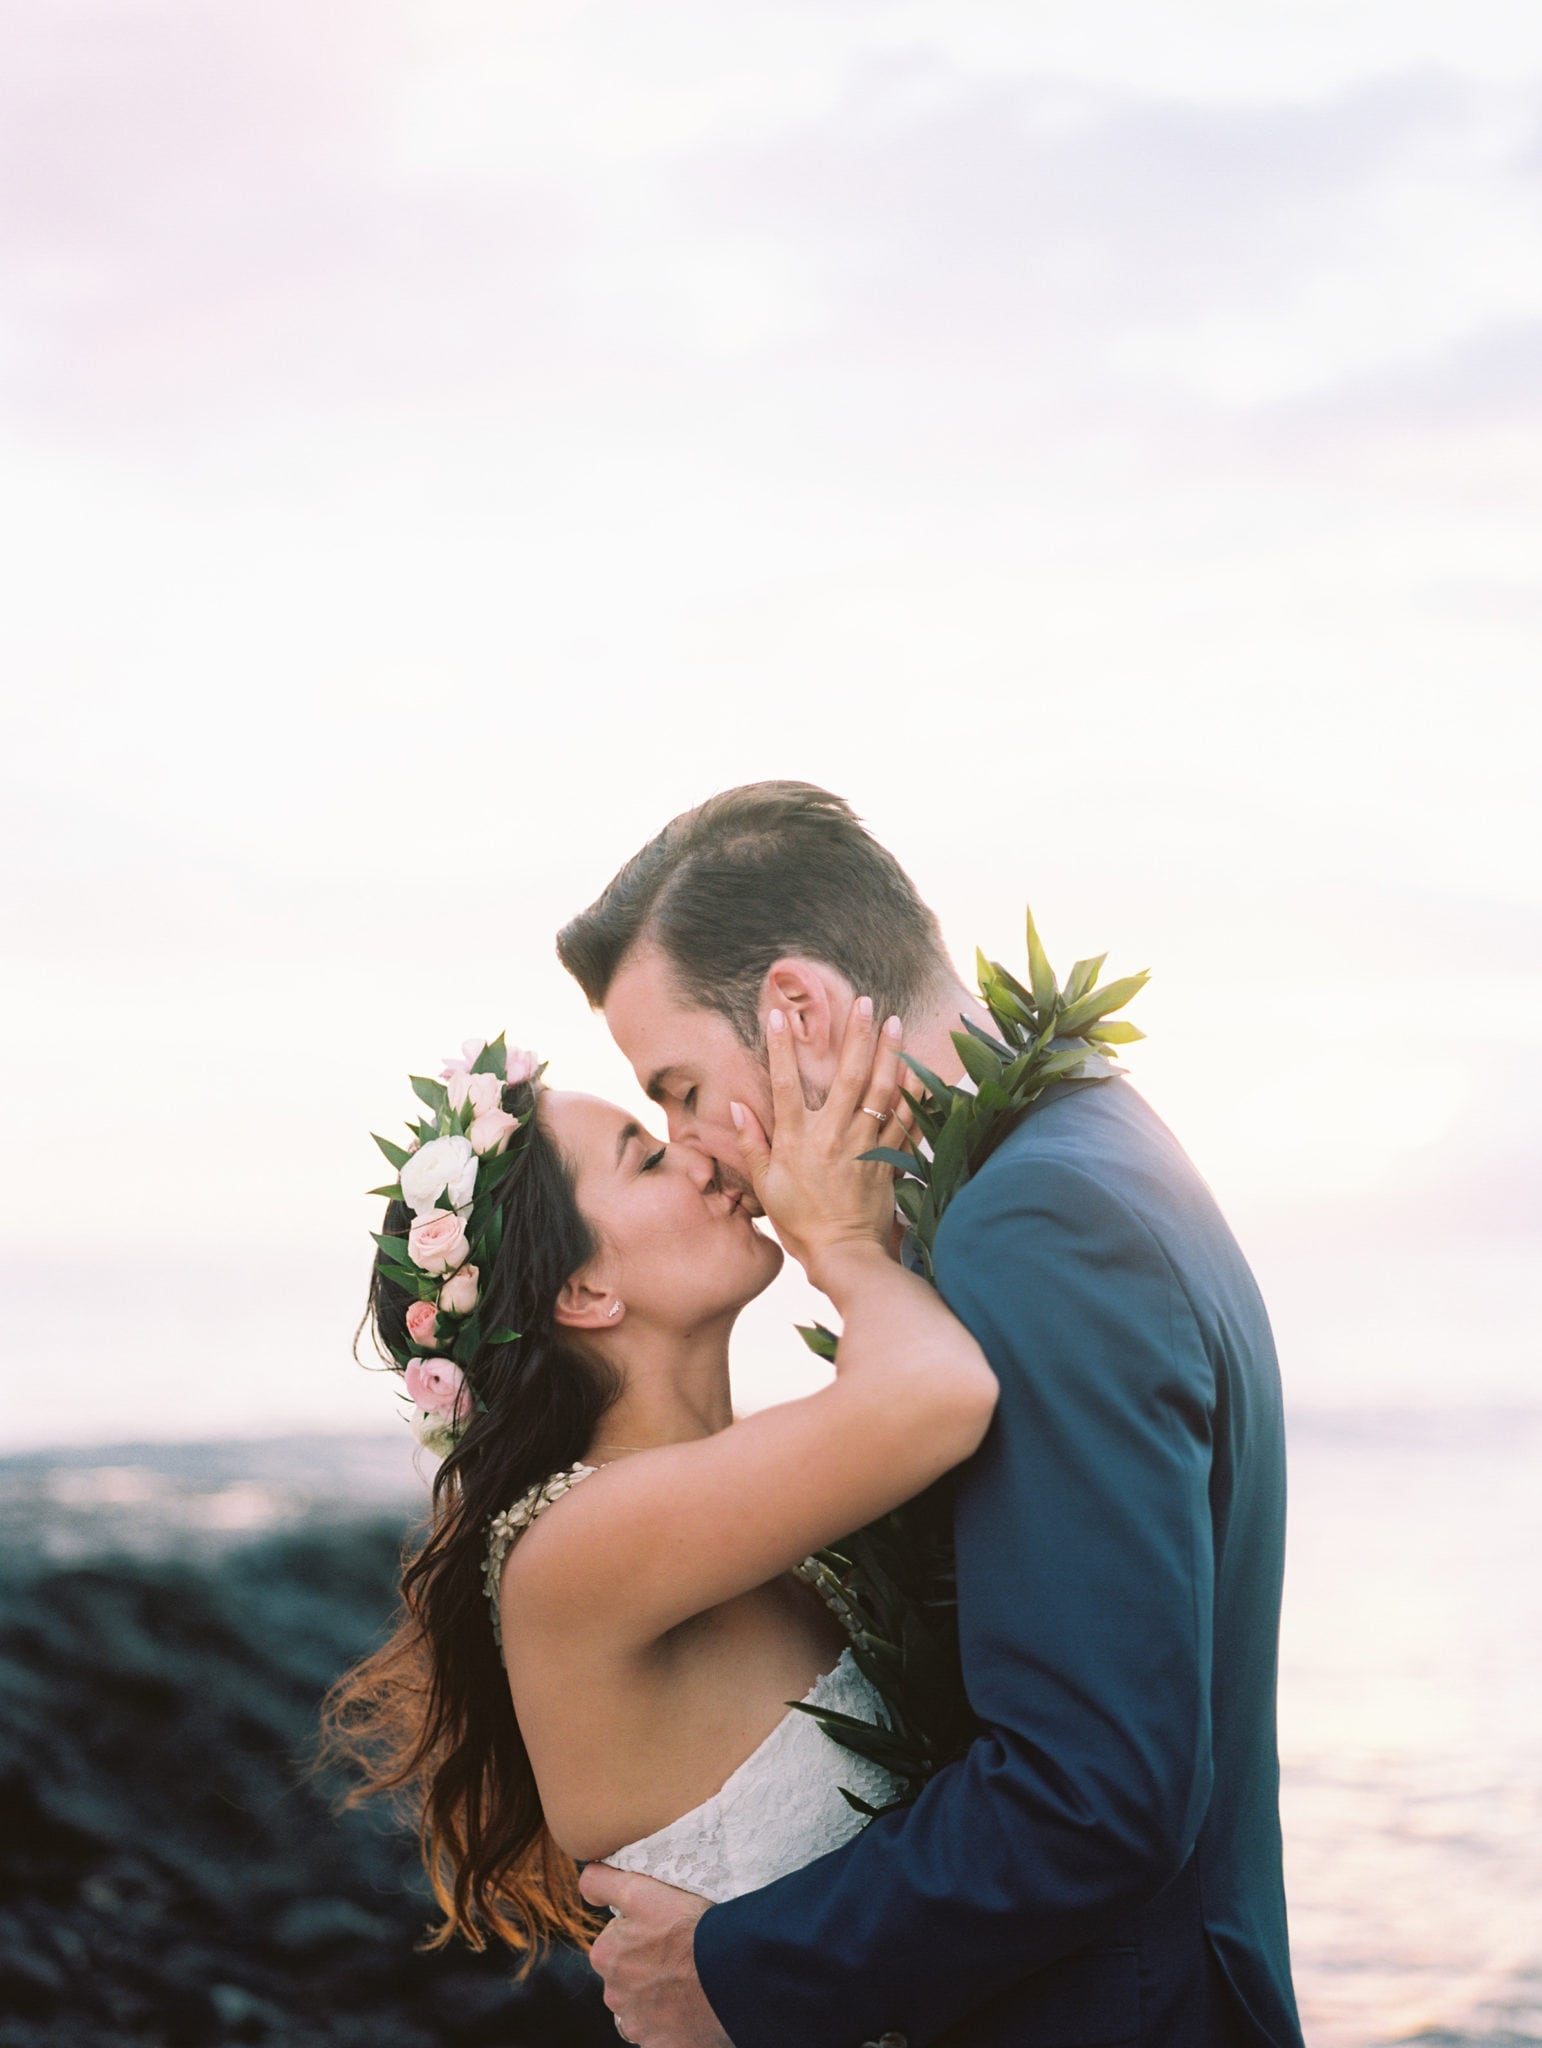 A Maui Wedding in True Hawaiian Style